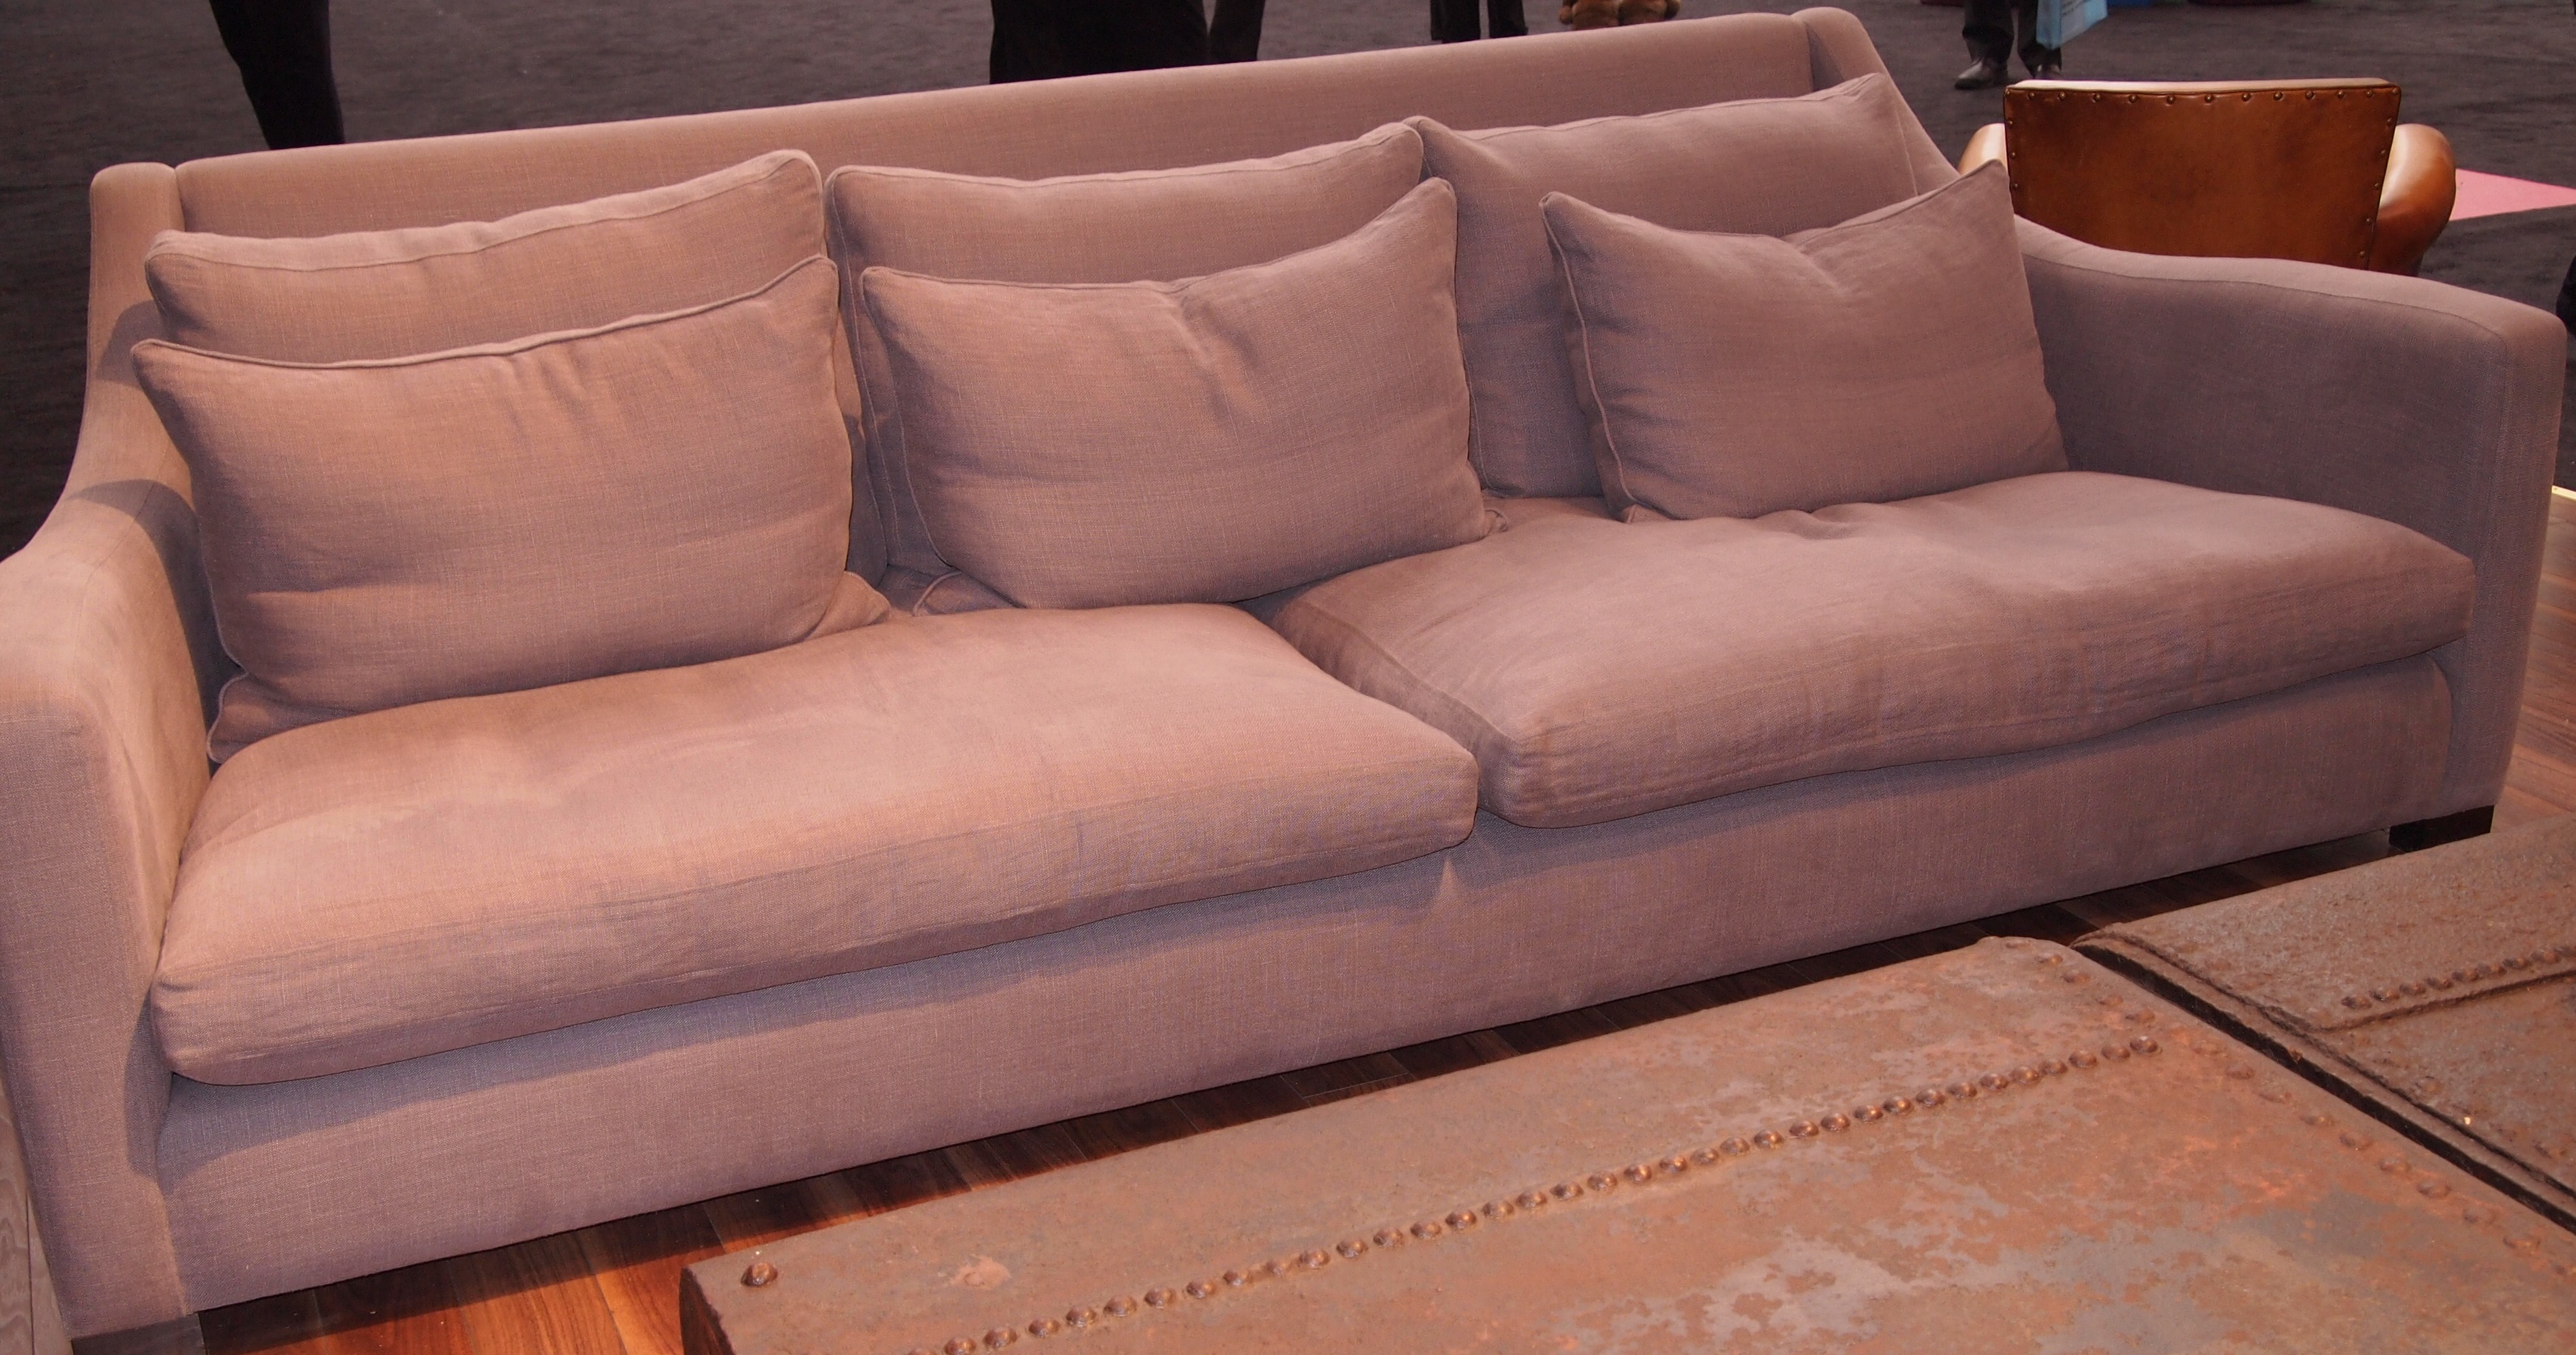 Kijiji kitchener furniture kijiji furniture kitchener for Sofa bed kijiji calgary